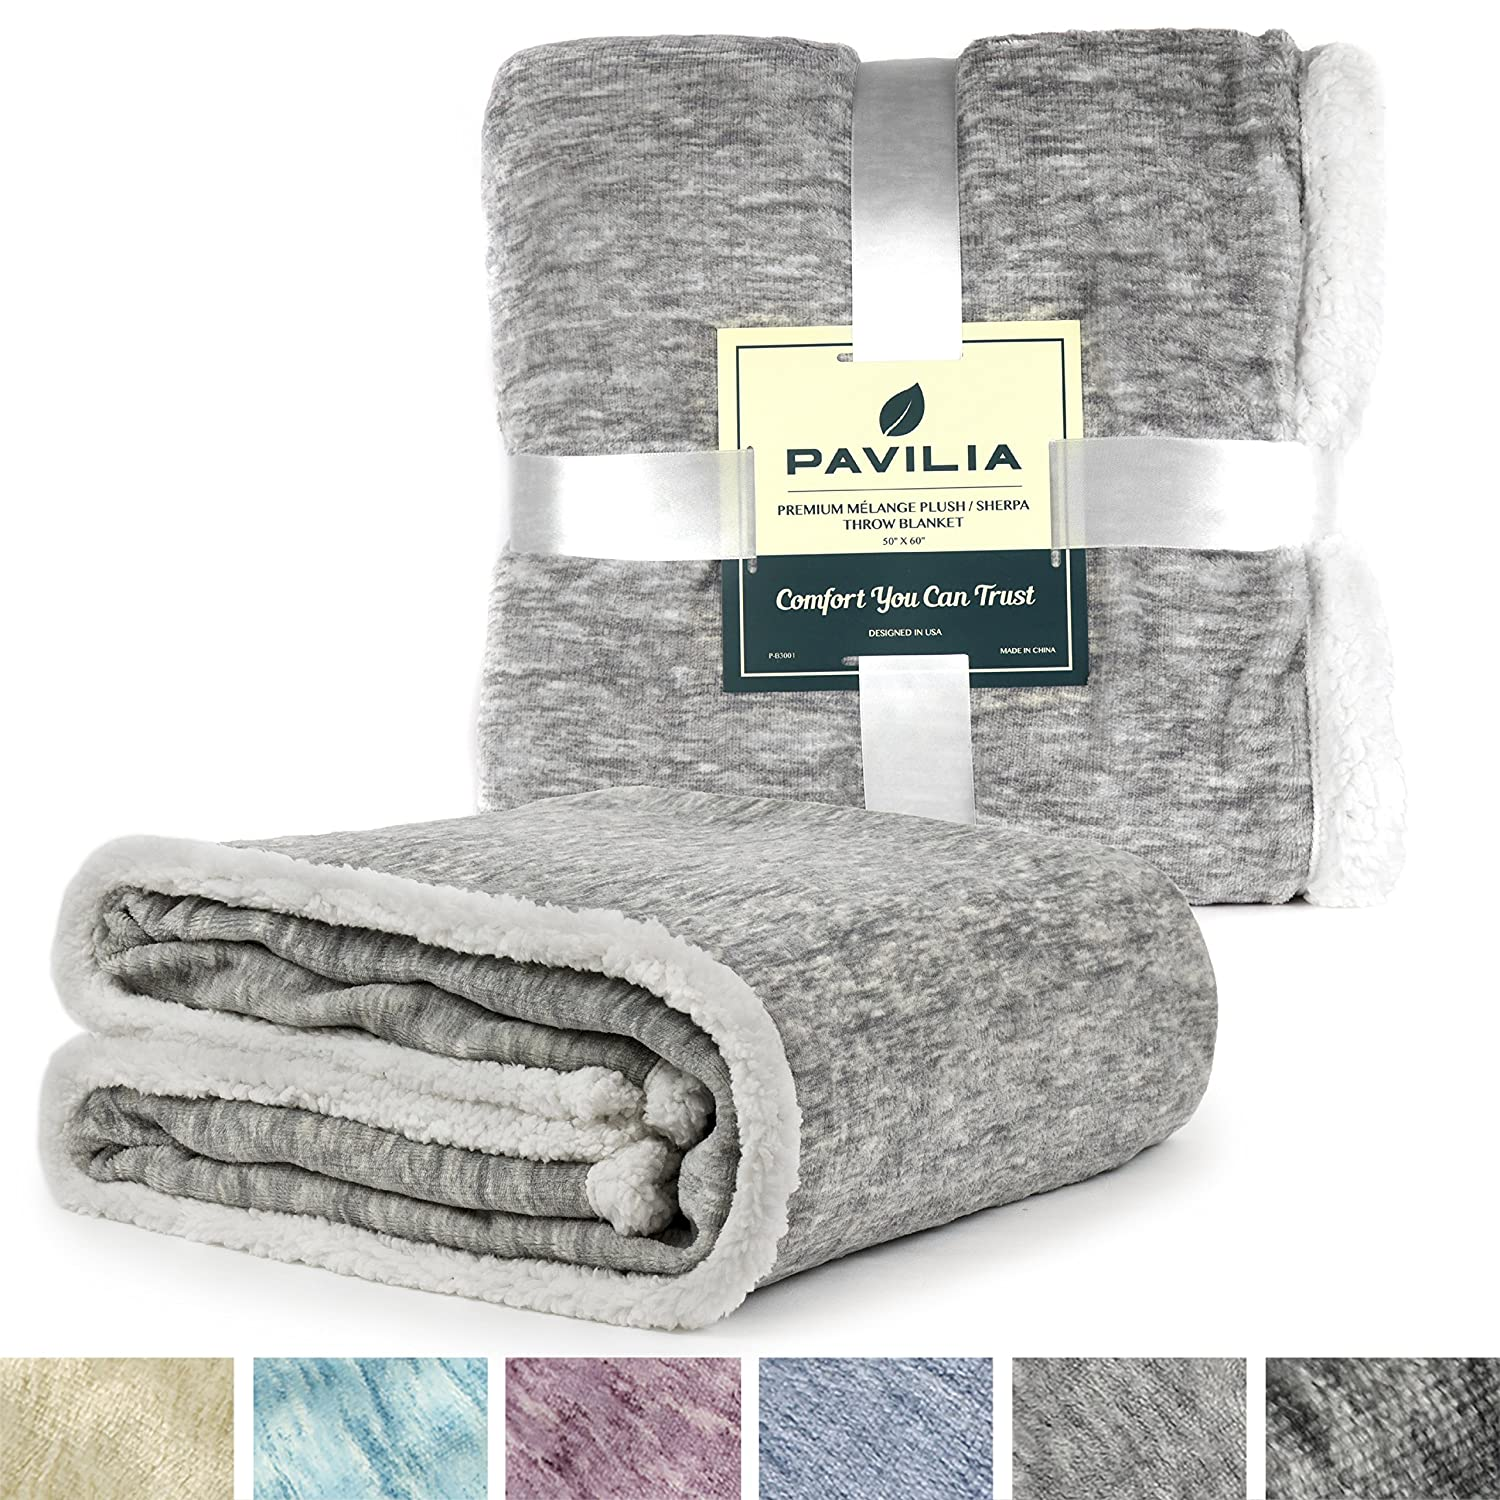 Premium Melange Sherpa Throw Blanket by Pavilia Light Gray